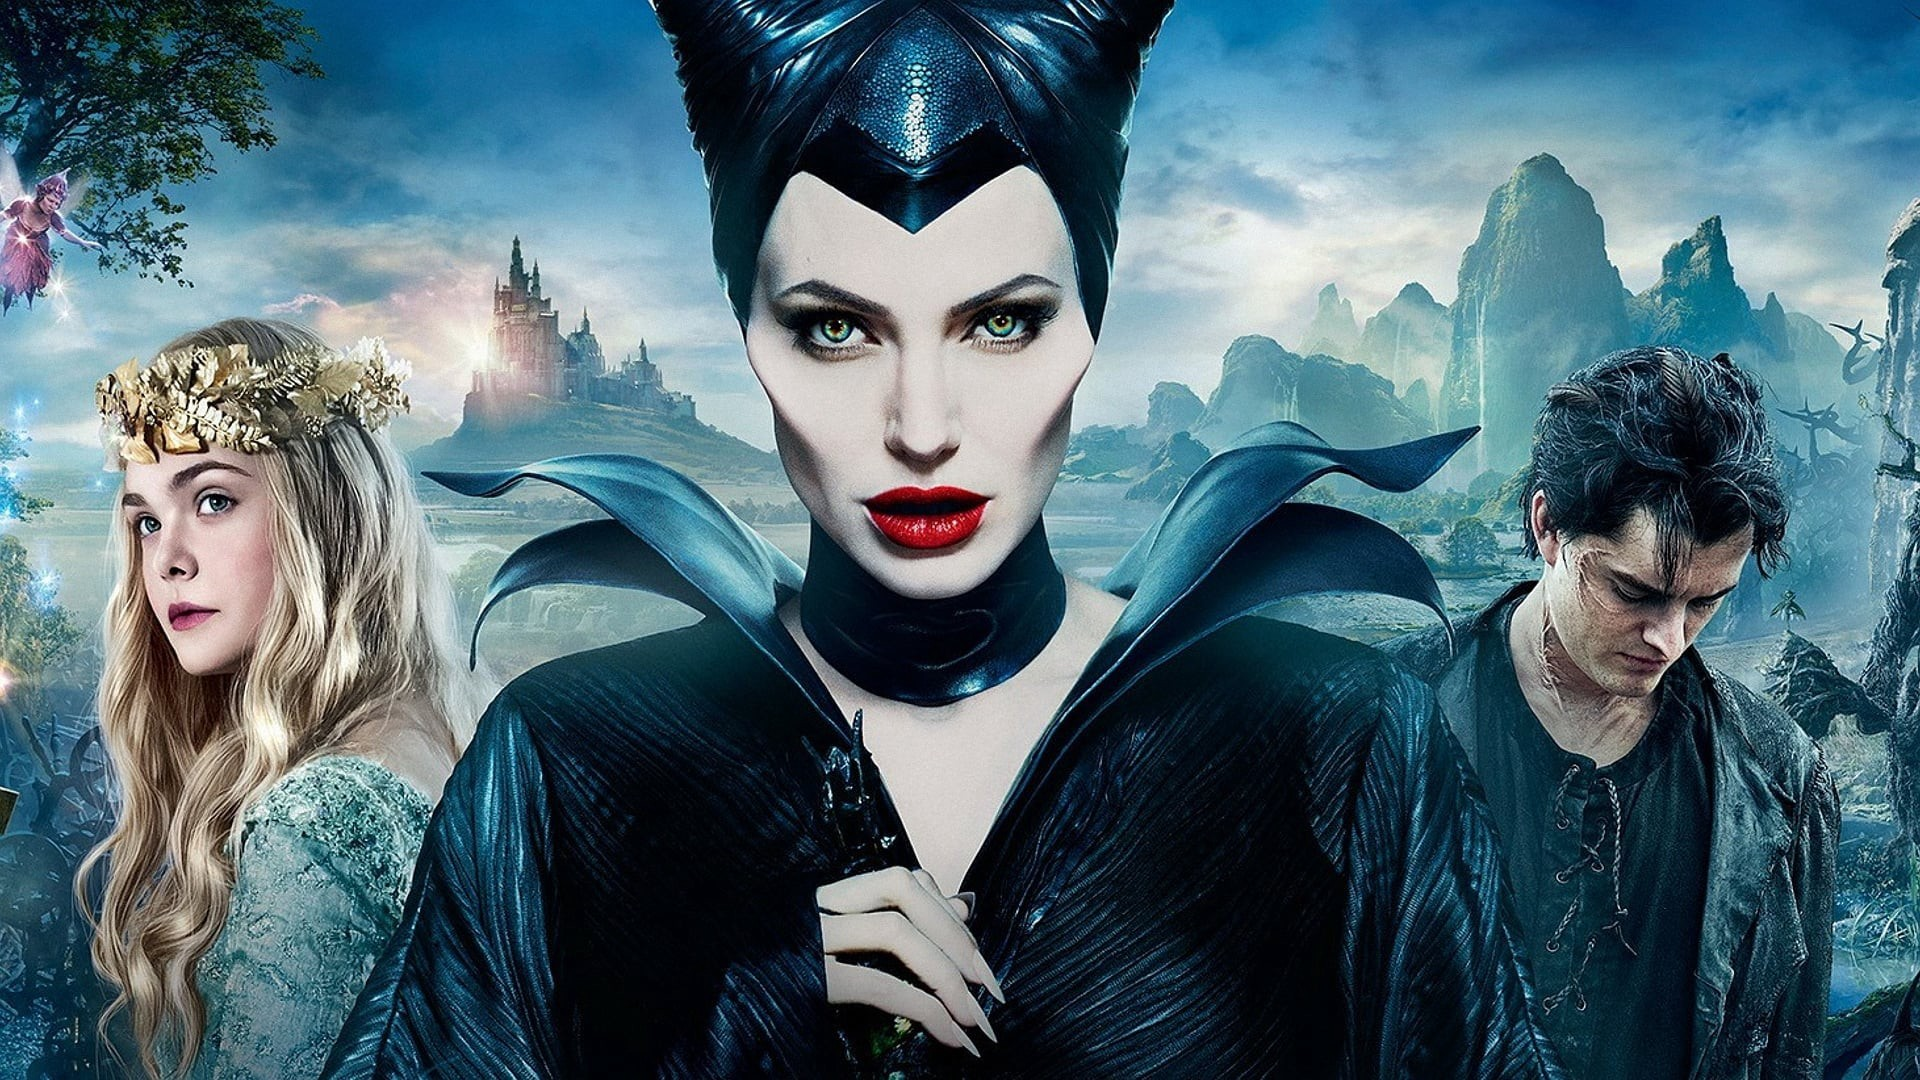 Maleficent Full Movie Watch Online Free With English Subtitles